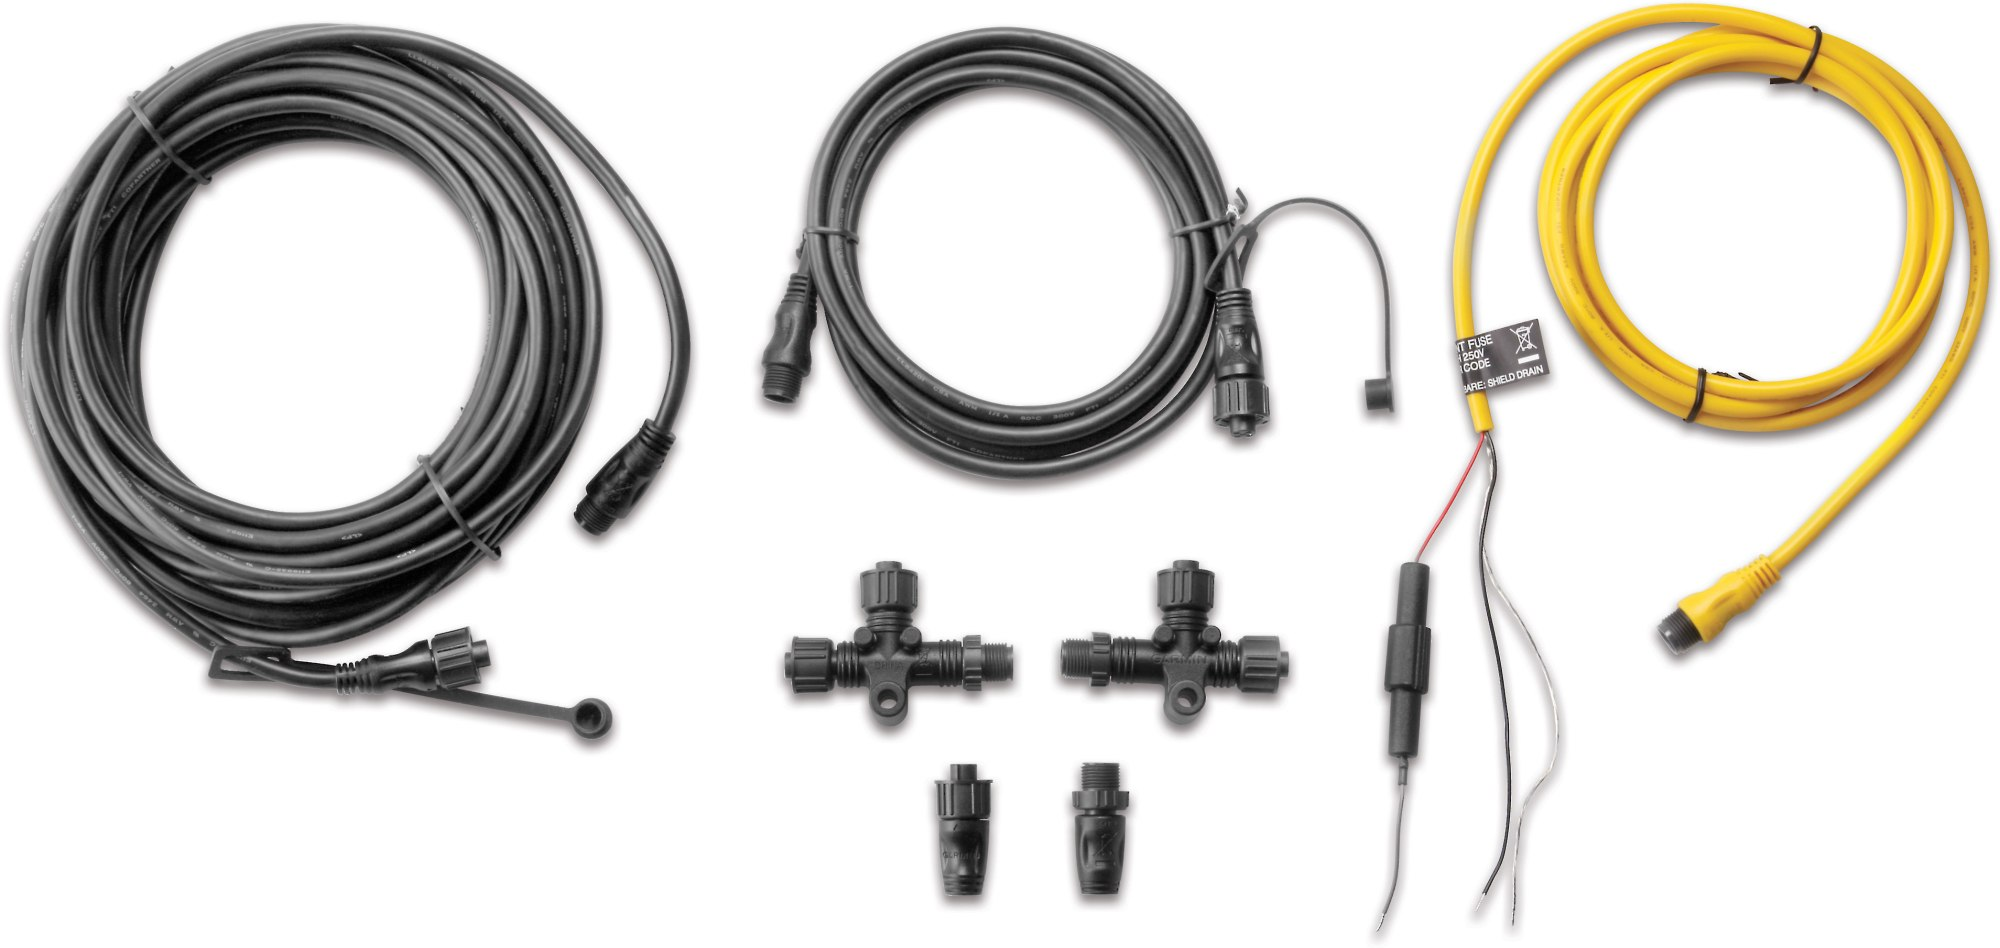 hight resolution of garmin nmea 2000 starter kit complete kit includes drop backbone and power cables at crutchfield